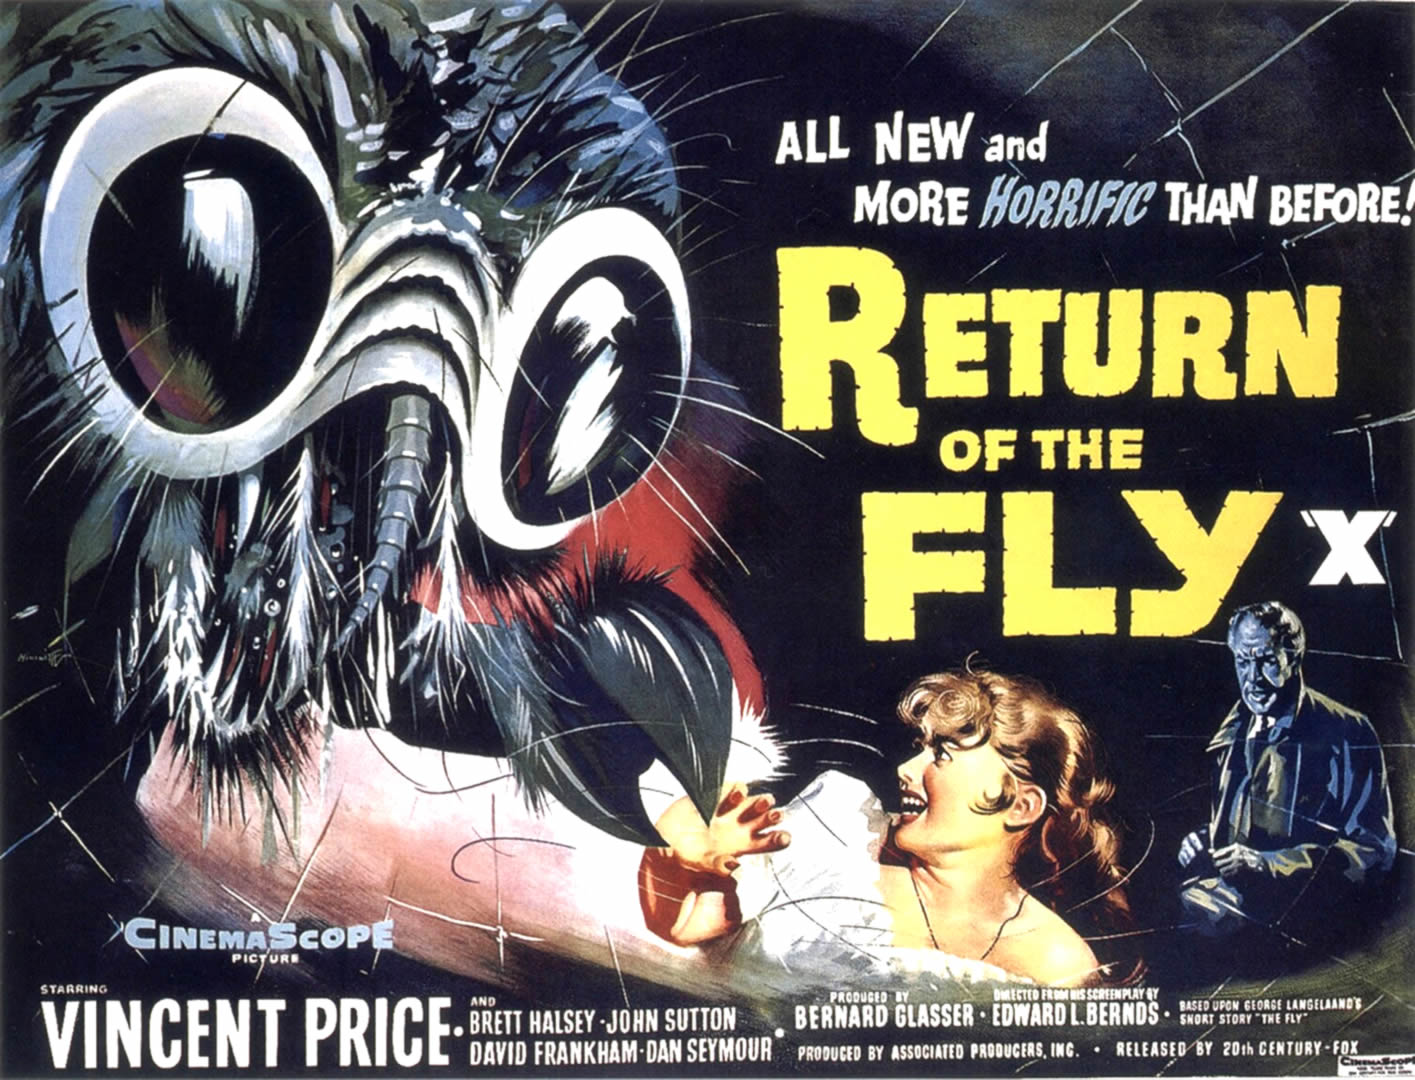 Return of the fly monster b movie posters wallpaper image